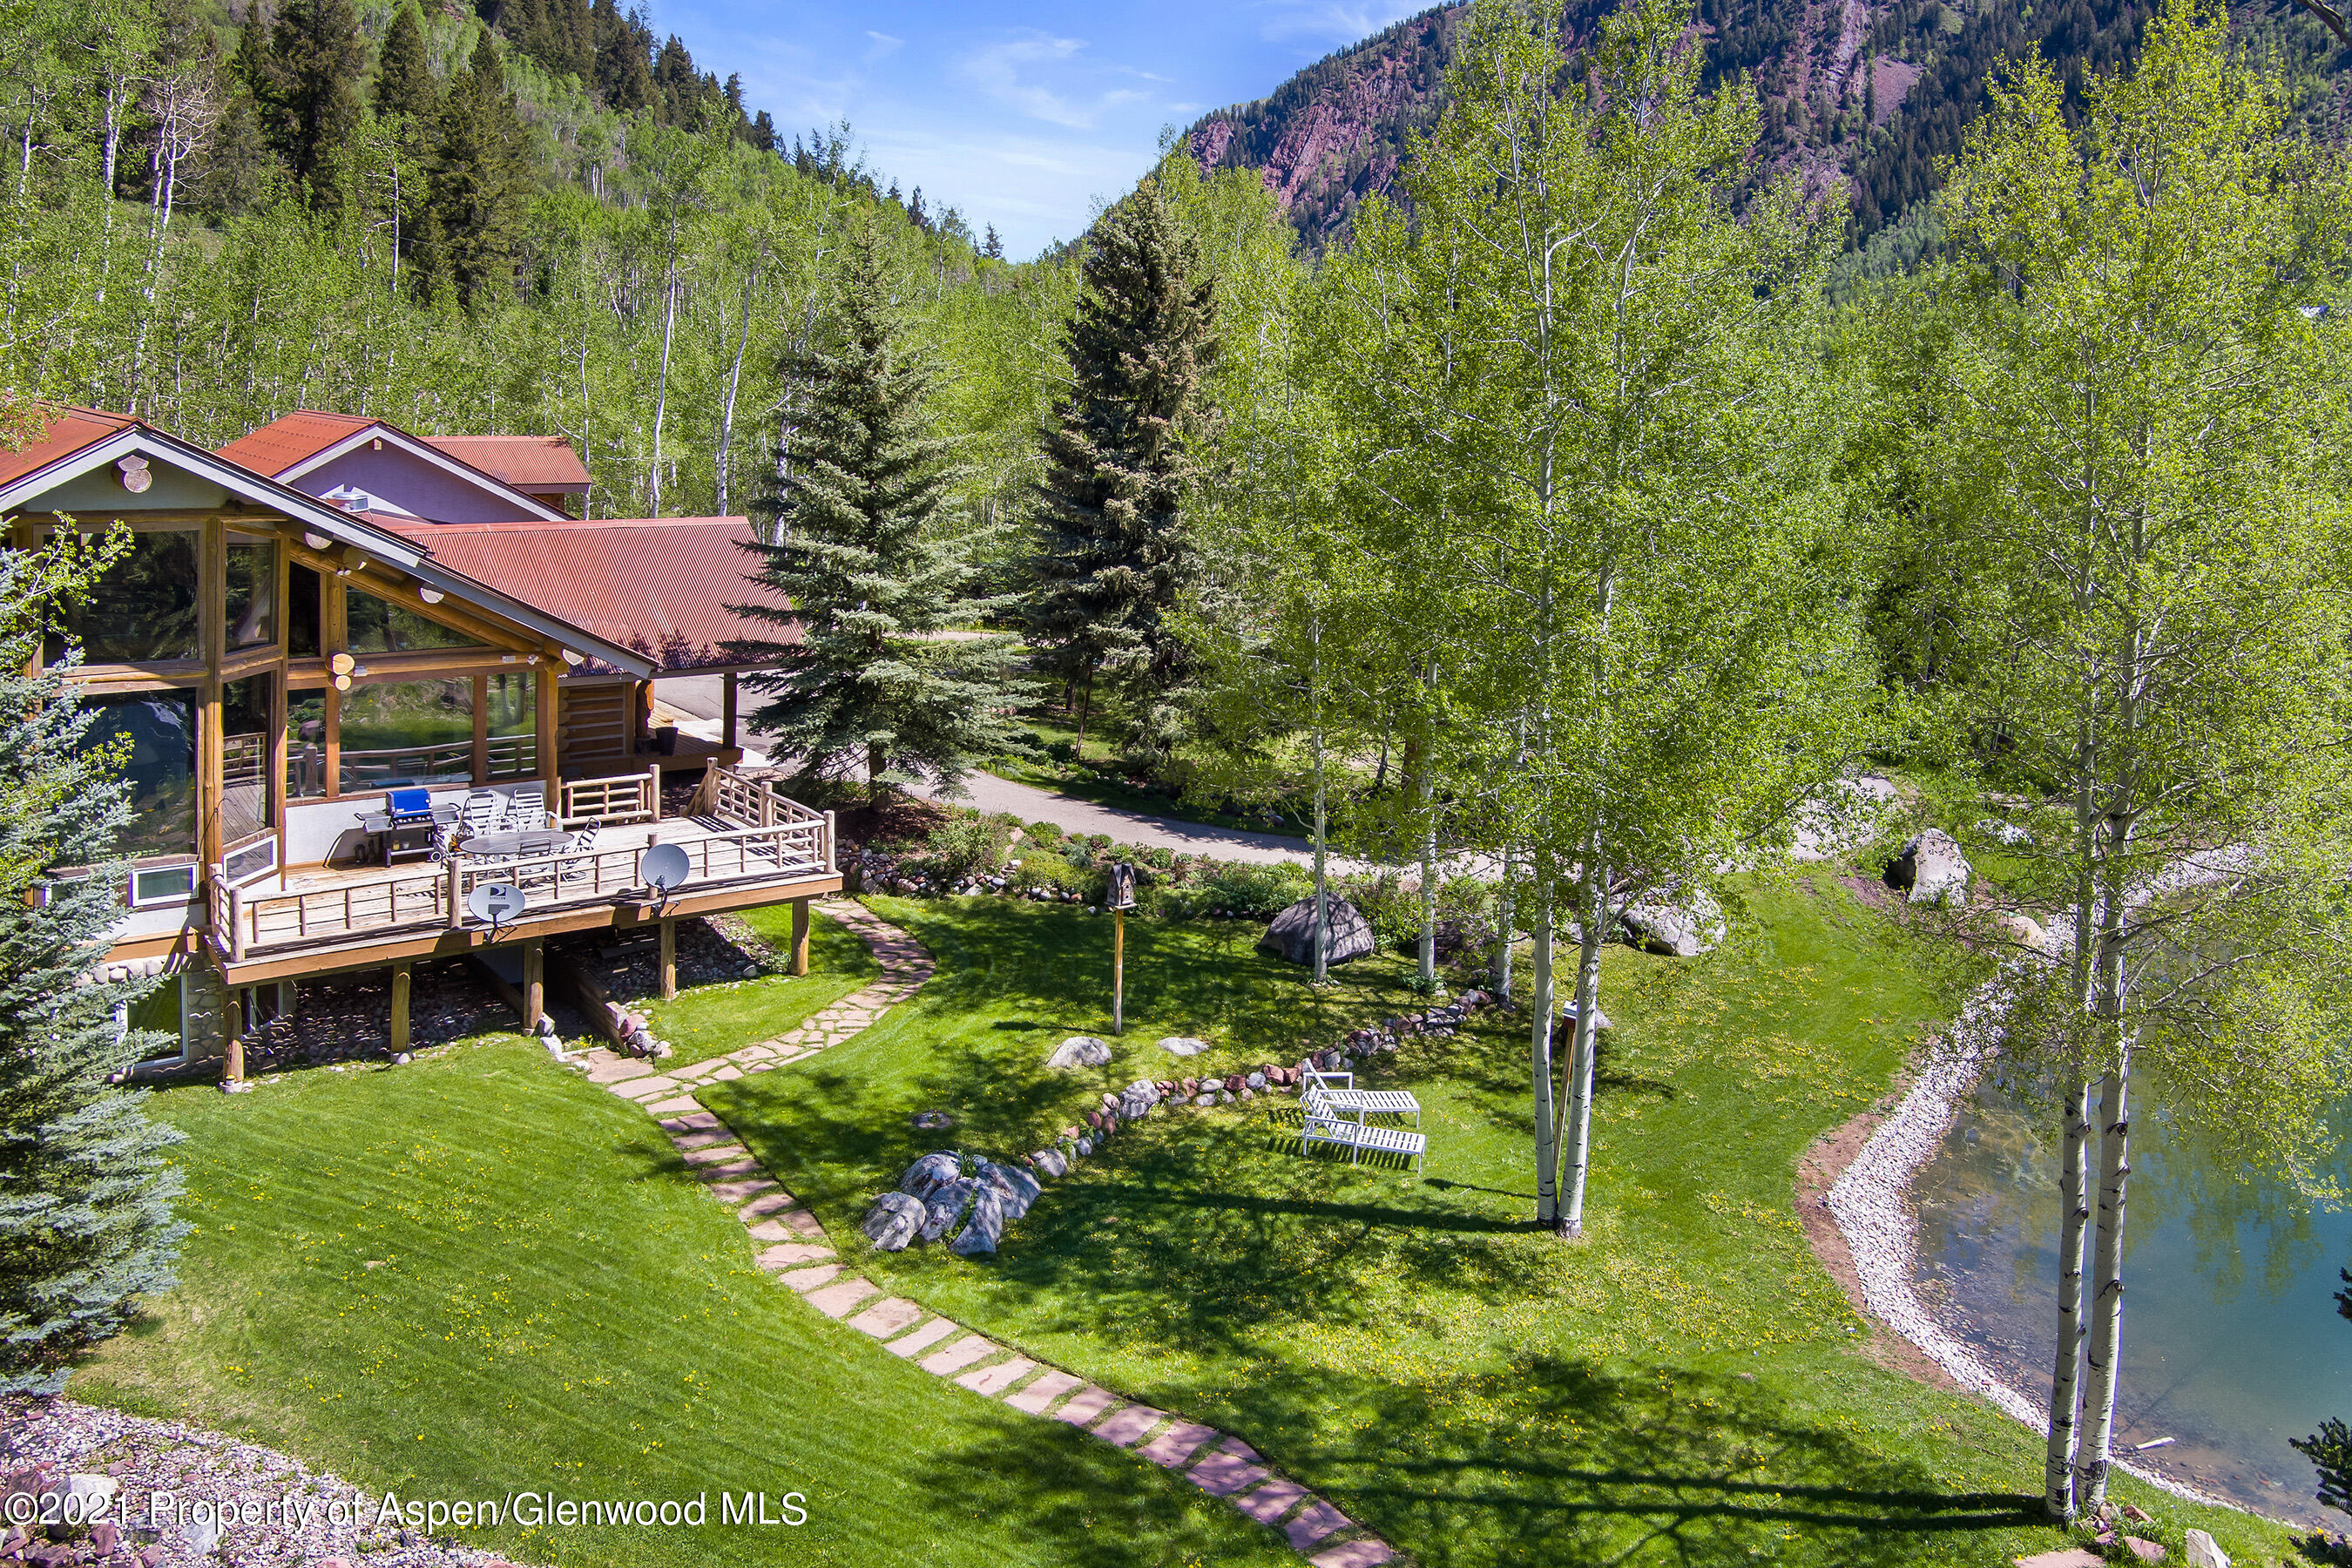 Step into this inviting 4 bedroom, 5 bath, mountain estate, just 10 minutes from downtown Aspen... and feel immediately at home! The spectacular Great Room is the heart of the home with its vaulted beam ceiling, multiple sitting areas, dramatic stone fireplace, dining area, gourmet kitchen, and deck overlooking your private pond. Large windows throughout brighten the traditional log home warmth. Impressive master bedroom suite includes large sitting area with huge picture windows, fabulous master bath with his and her walk-in closets, multiple vanities, separate makeup station, and rainfall shower with multiple heads, all nestled among the private aspen groves.  Separate office, home gym, 3-car oversized garage for the toys, water rights, over 3 acres of country privacy, and much more!